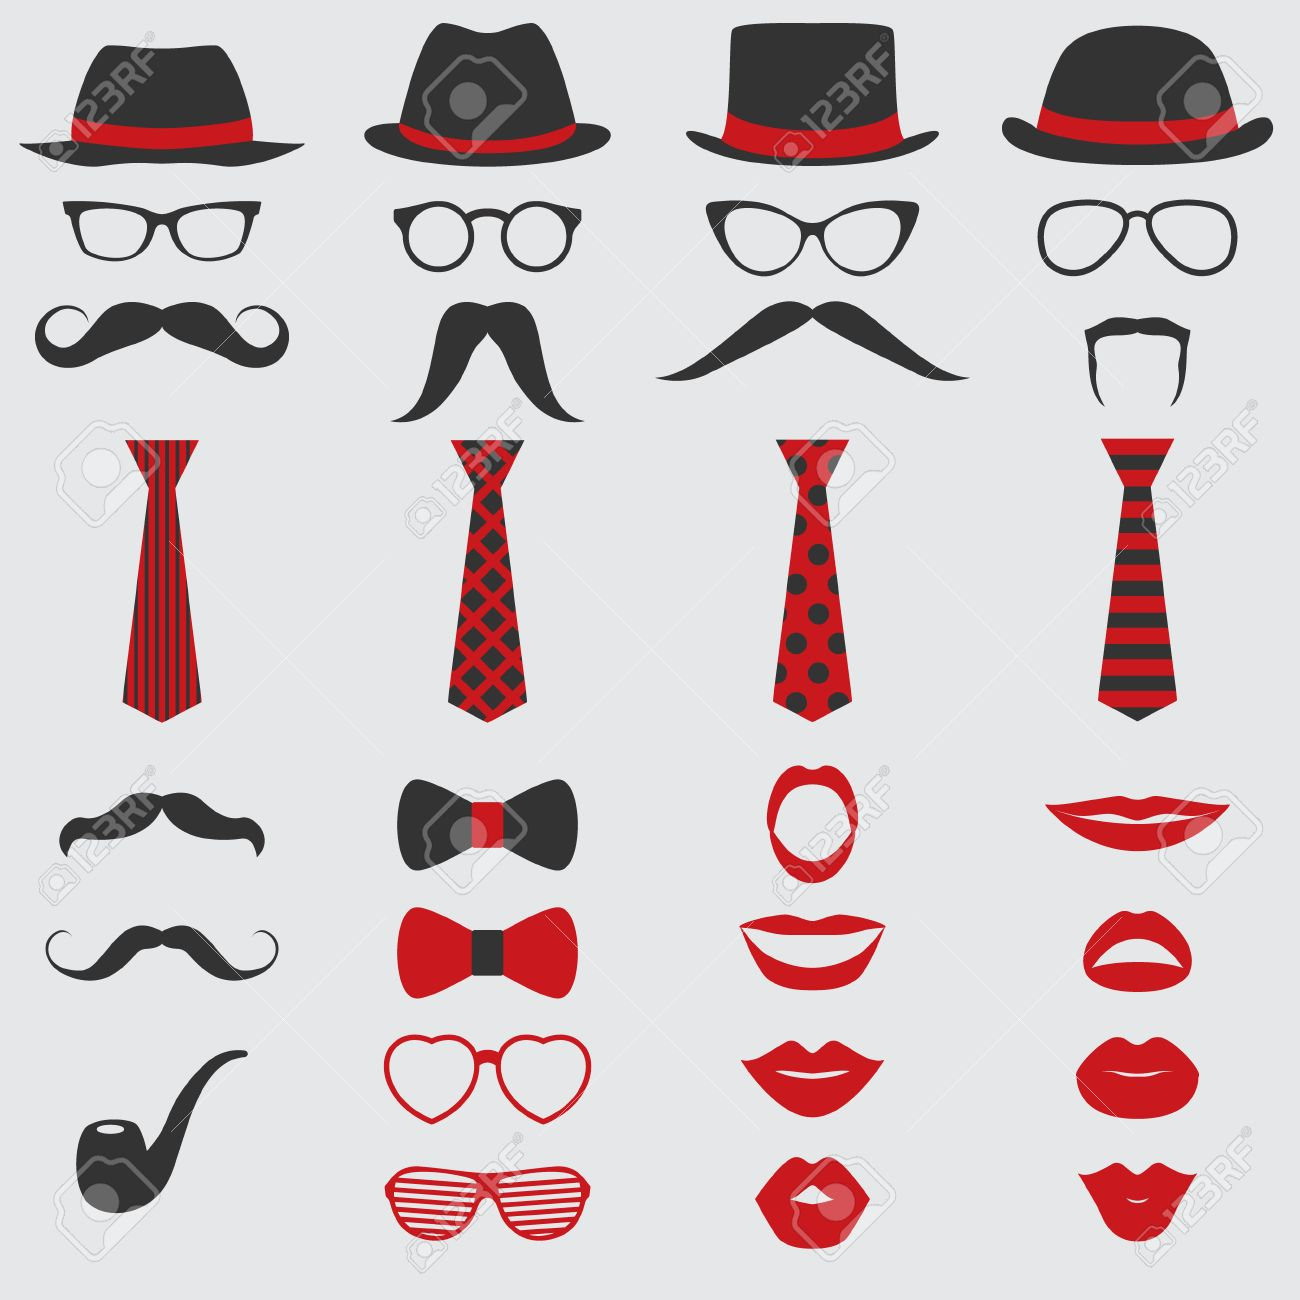 Retro Party set - Glasses, hats, lips, mustaches, ties and pipe - for design, photo booth, scrapbook in vector - 34868591